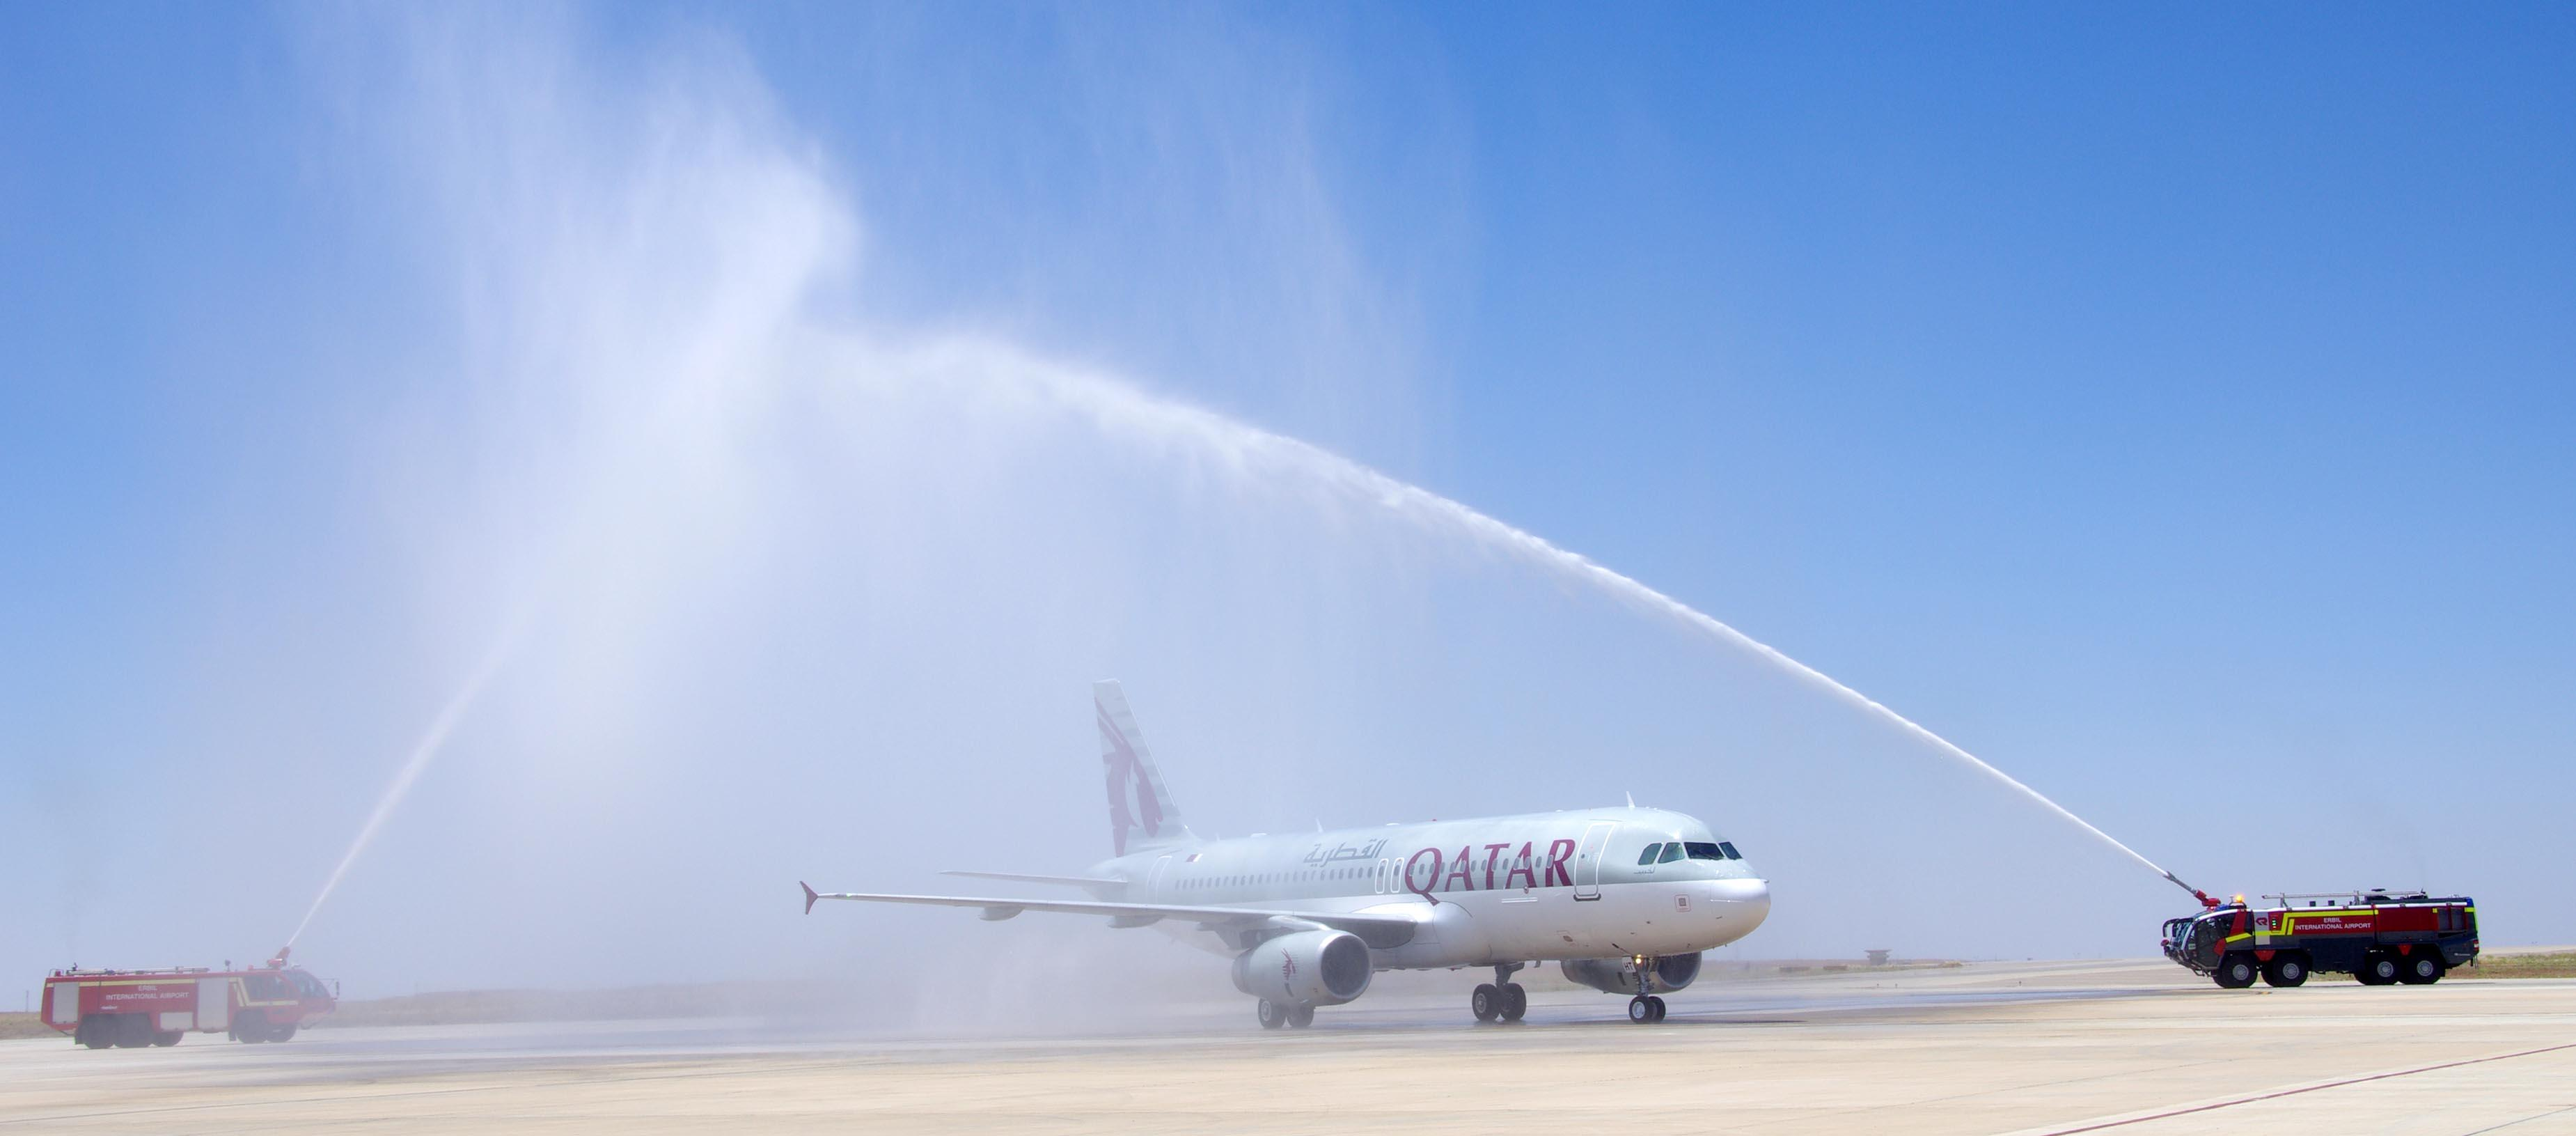 Qatar Airways Has Extended Its Middle East Footprint To Iraq